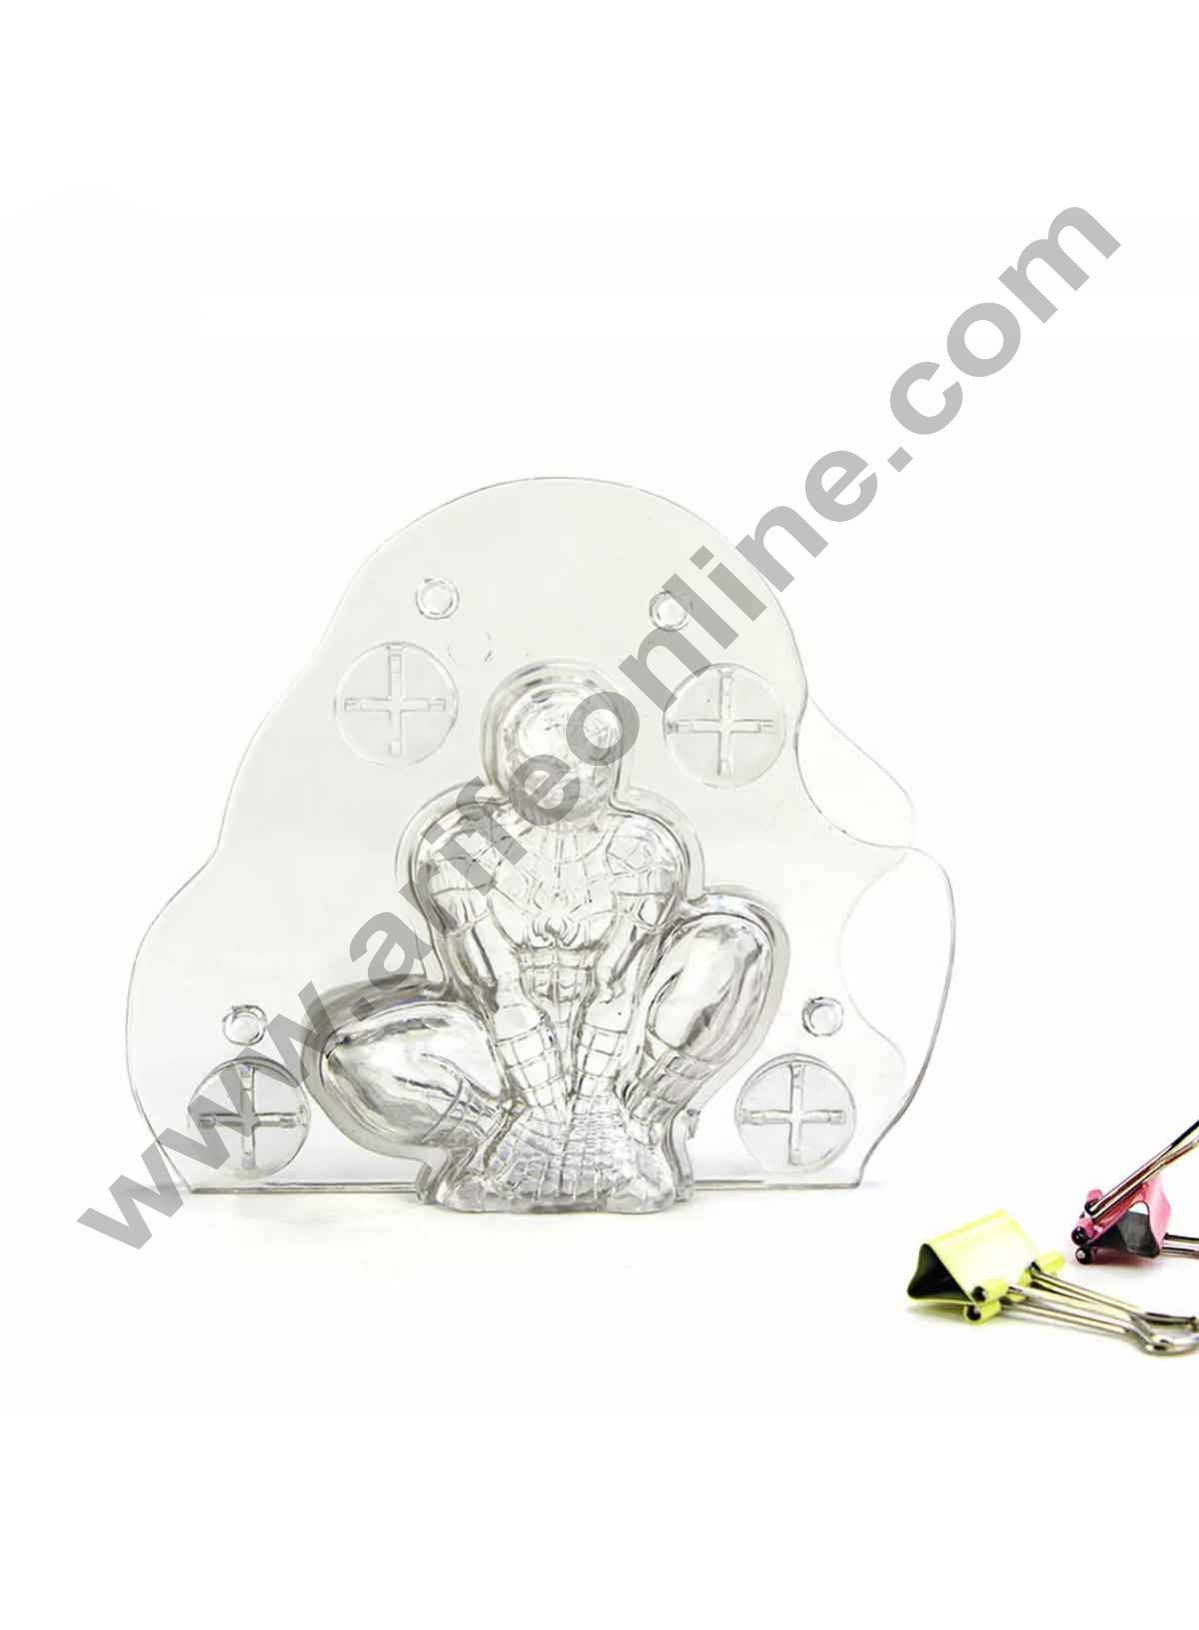 Cake Decor Polycarbonate 3D Spider Man Chocolate Mold Cake Decorating Chocolate Mould Tools